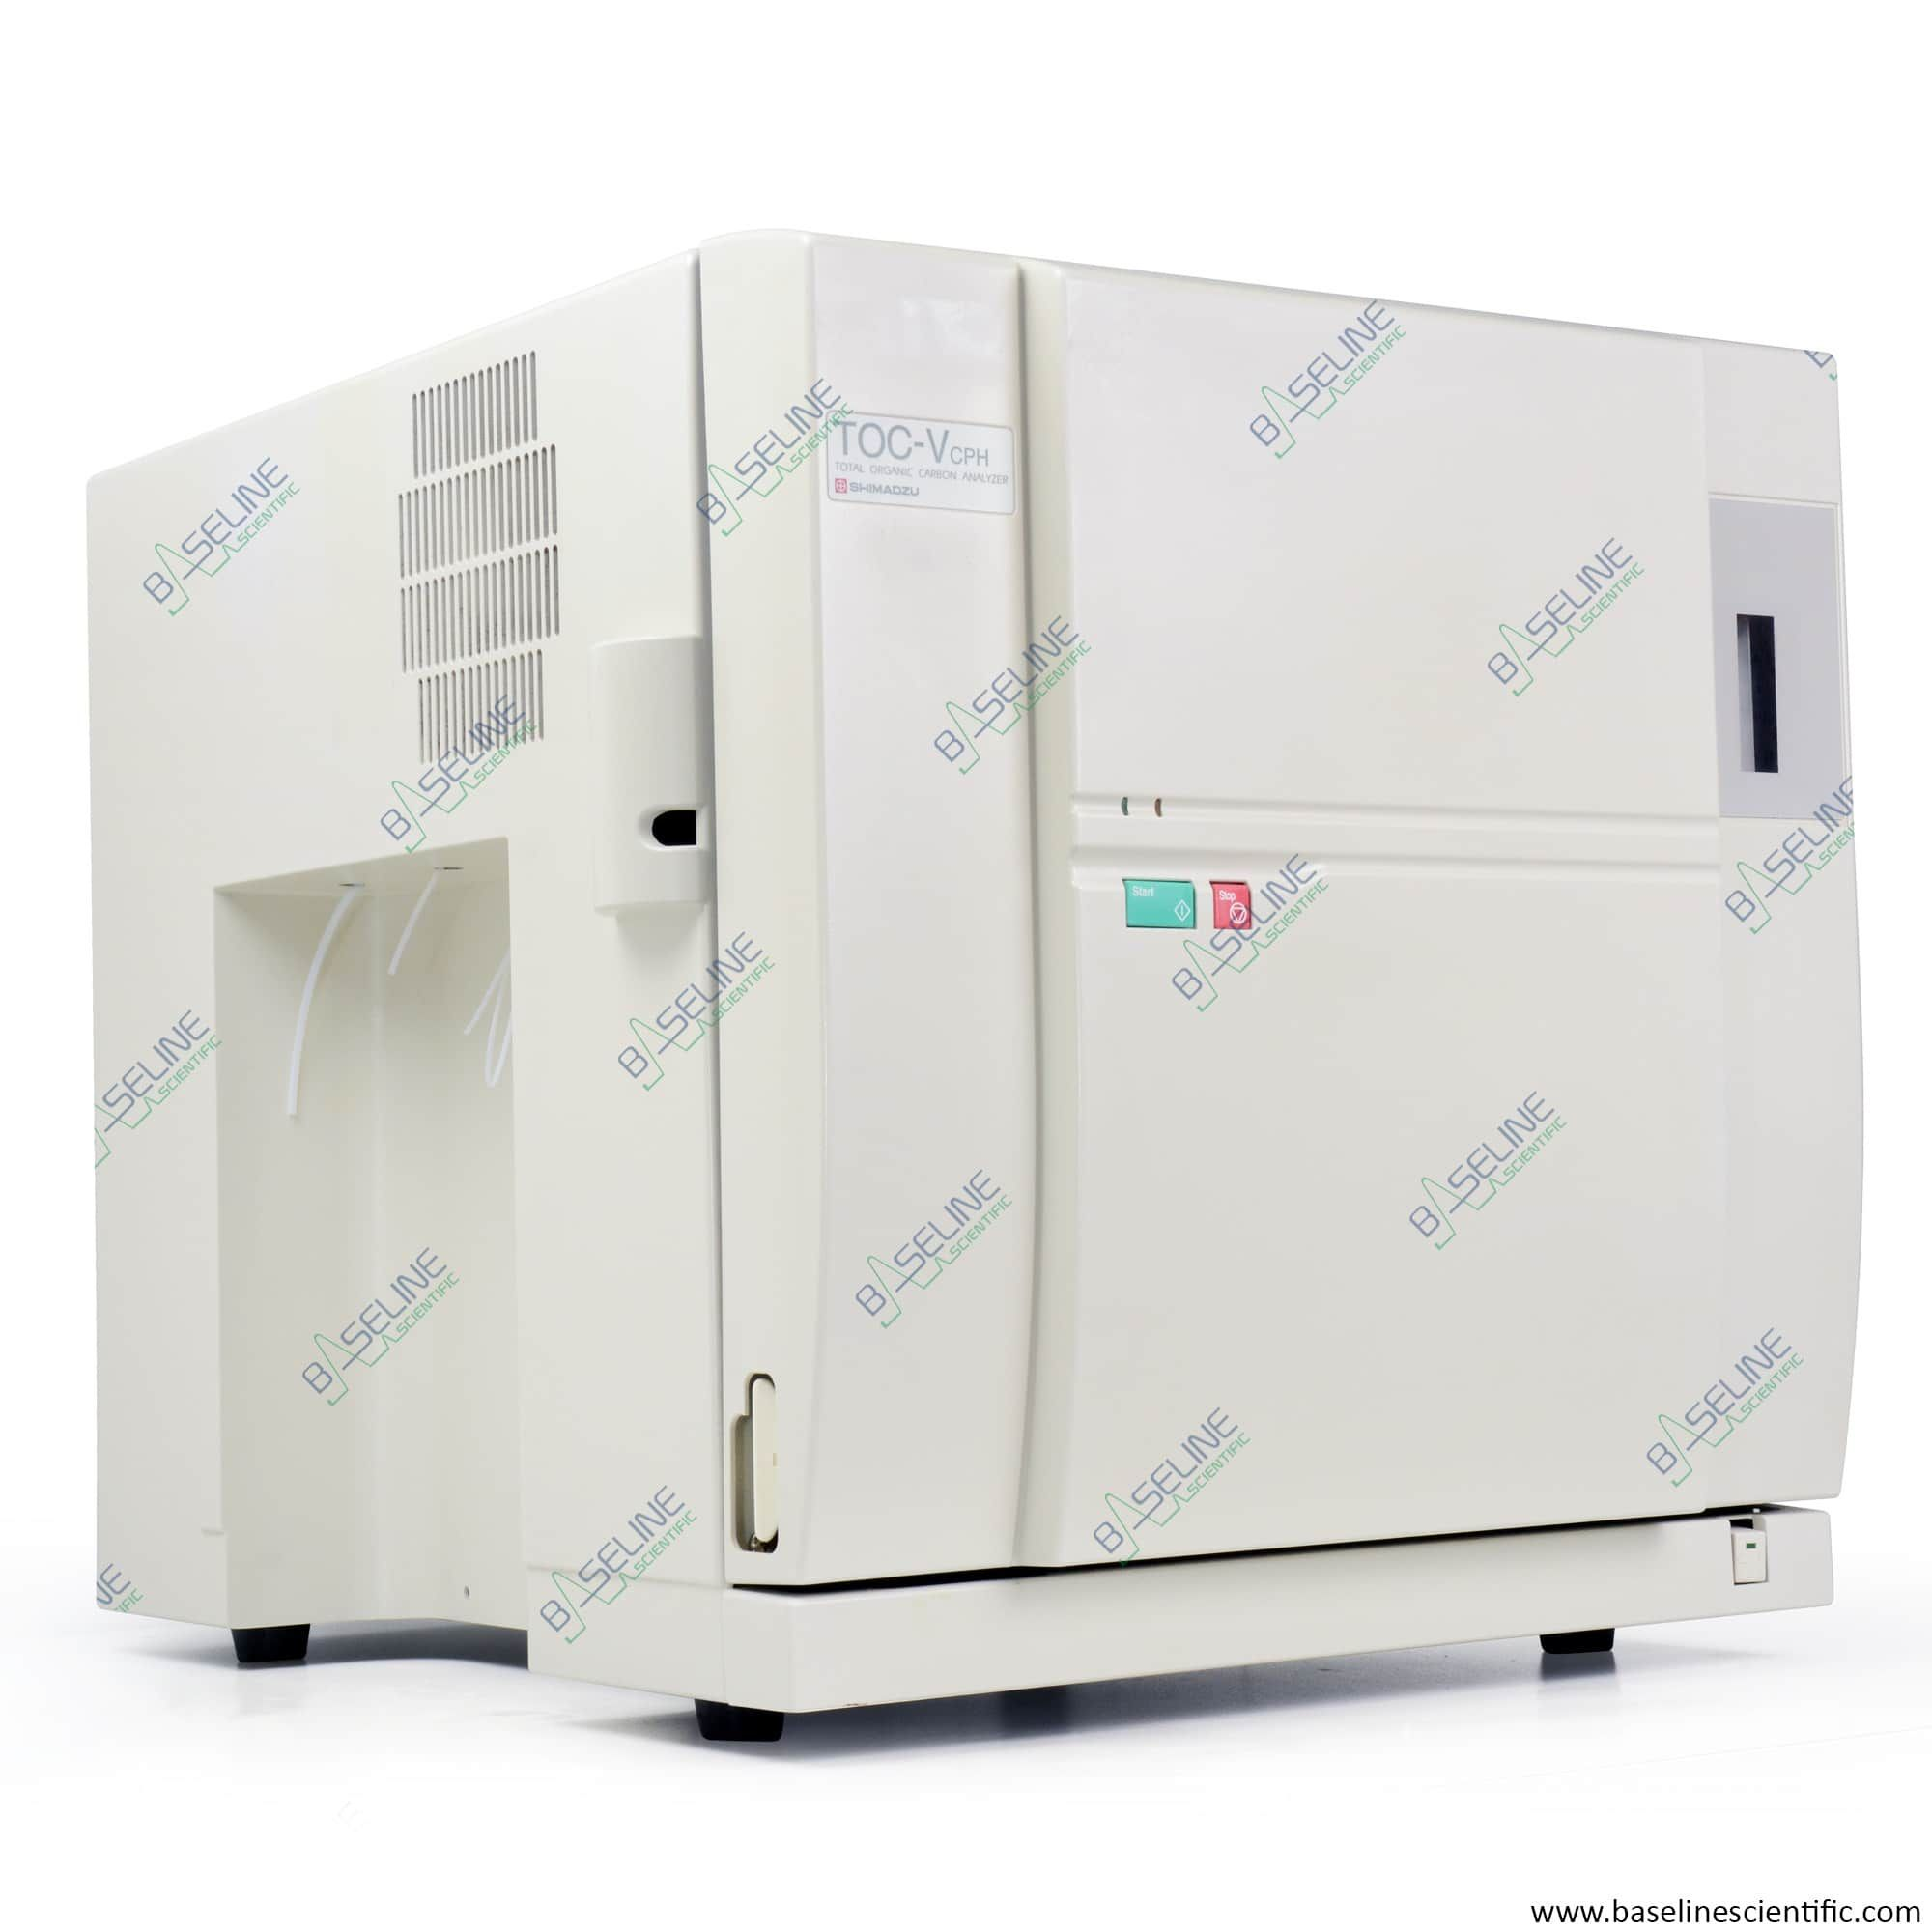 Refurbished Shimadzu TOC-V CPH Analyzer with Control Software and ONE YEAR WARRANTY